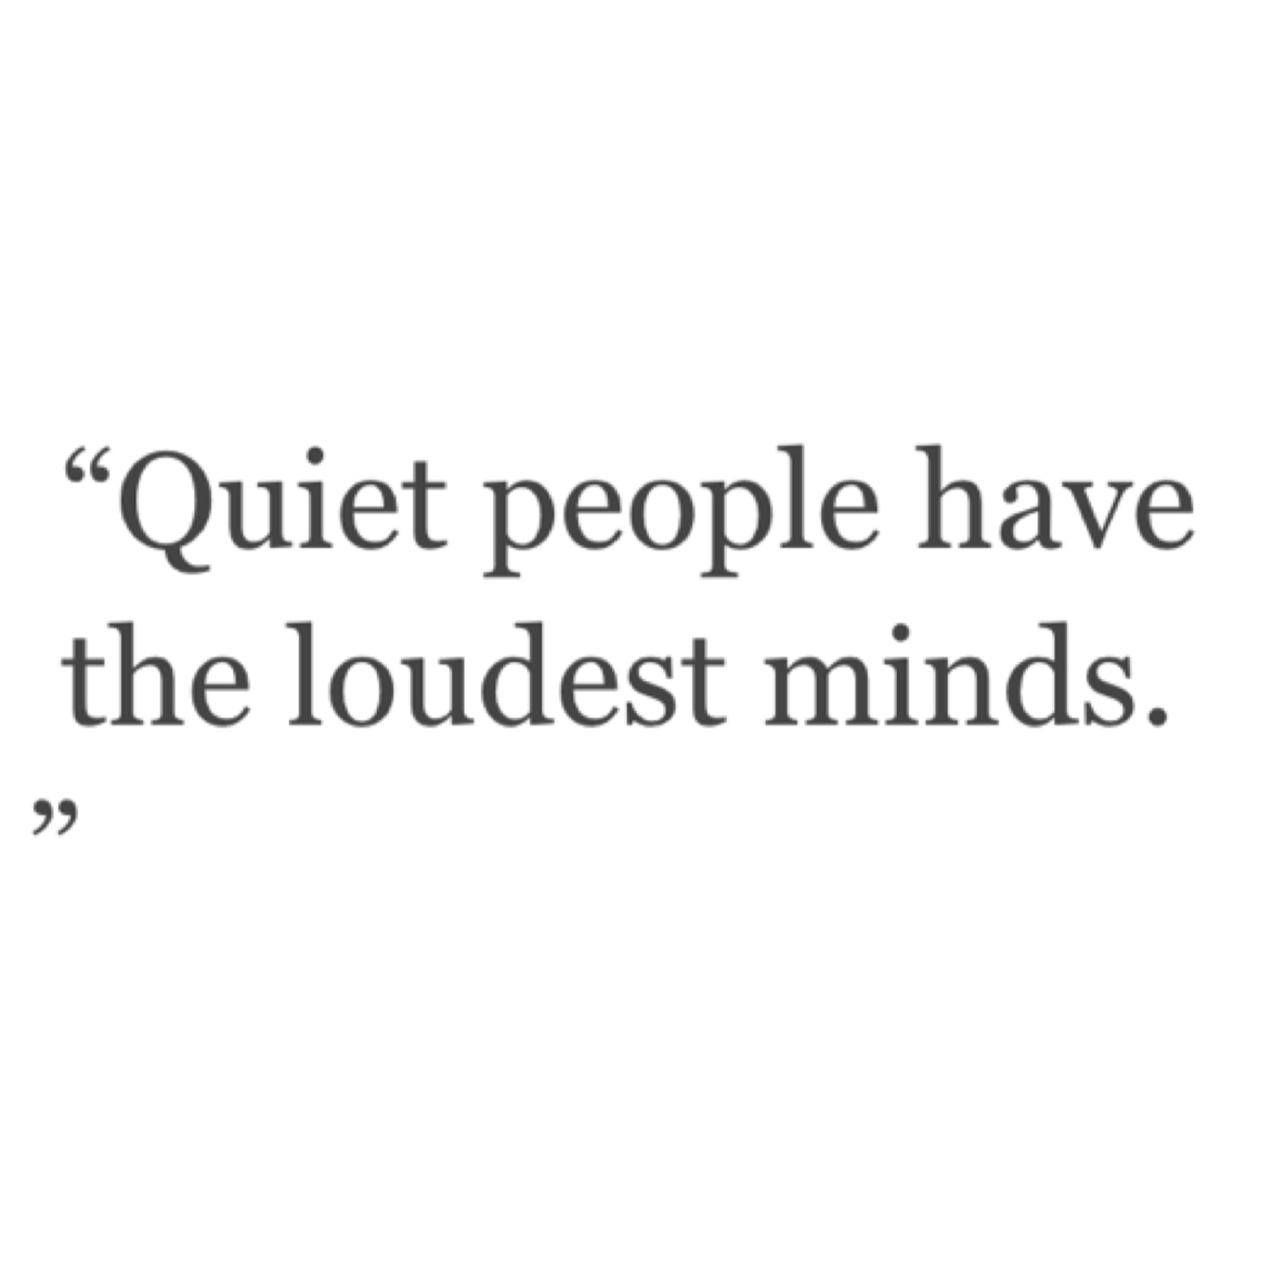 feelings, quotes, shy, words, quiet people - image #3026953 ...